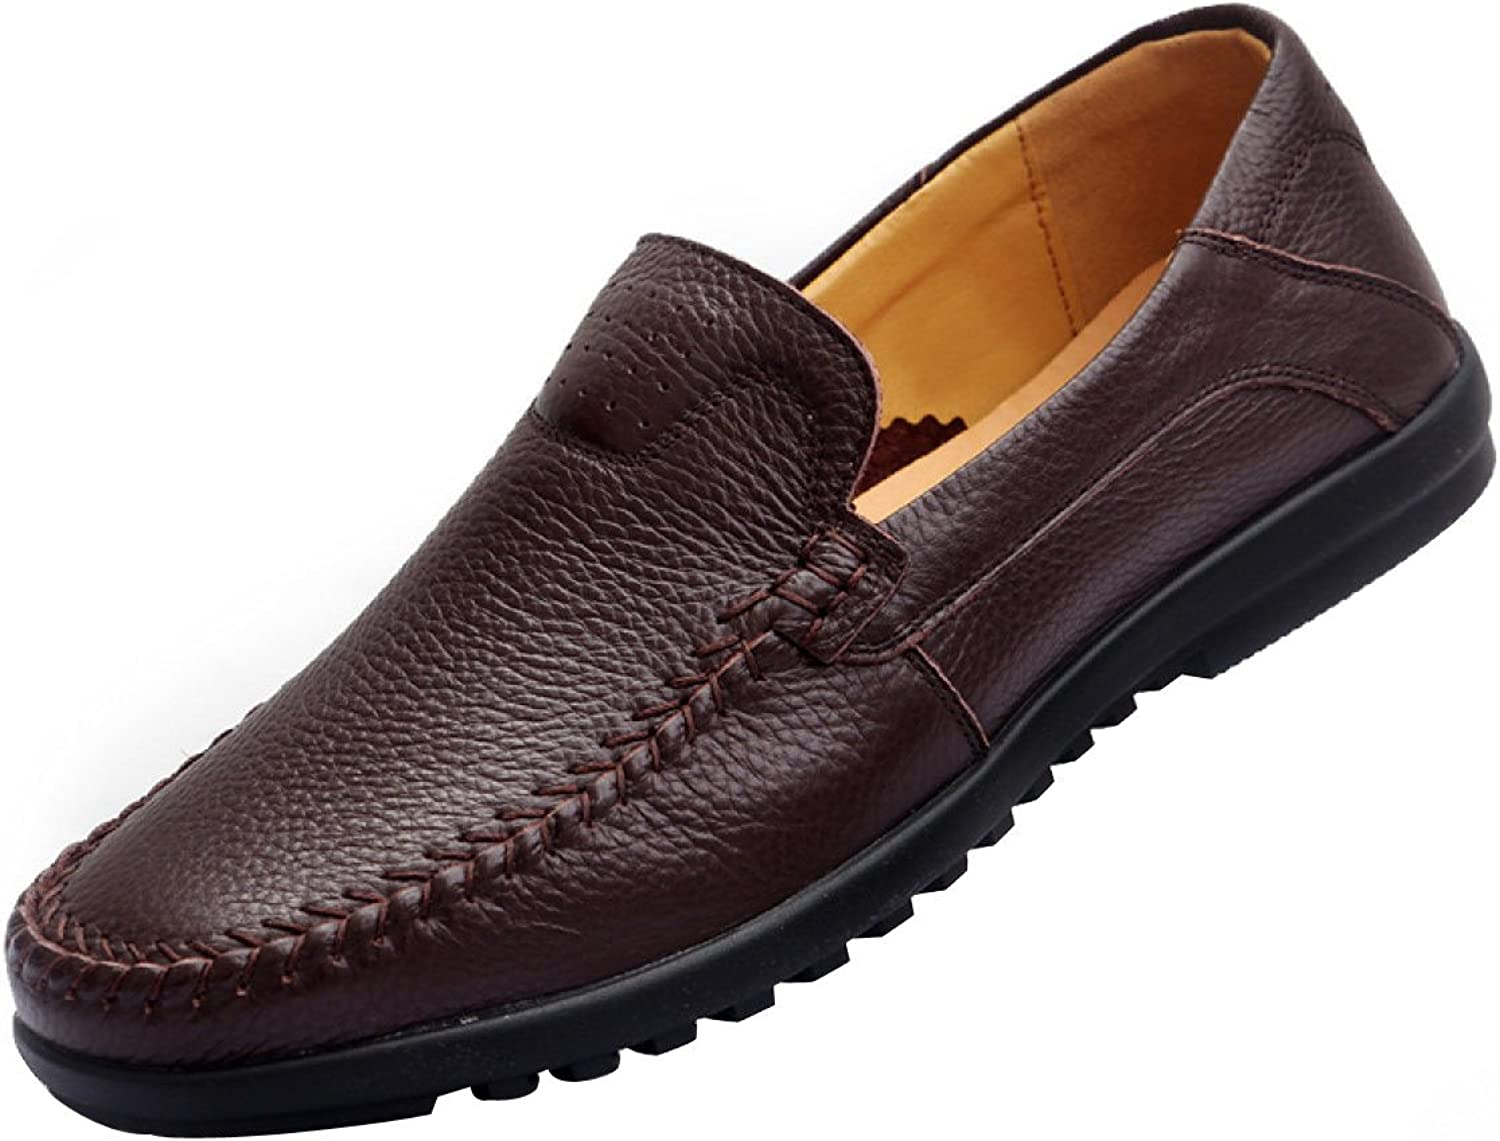 GTYMFH Men's Leather Loafers Casual Flat shoes Slip On